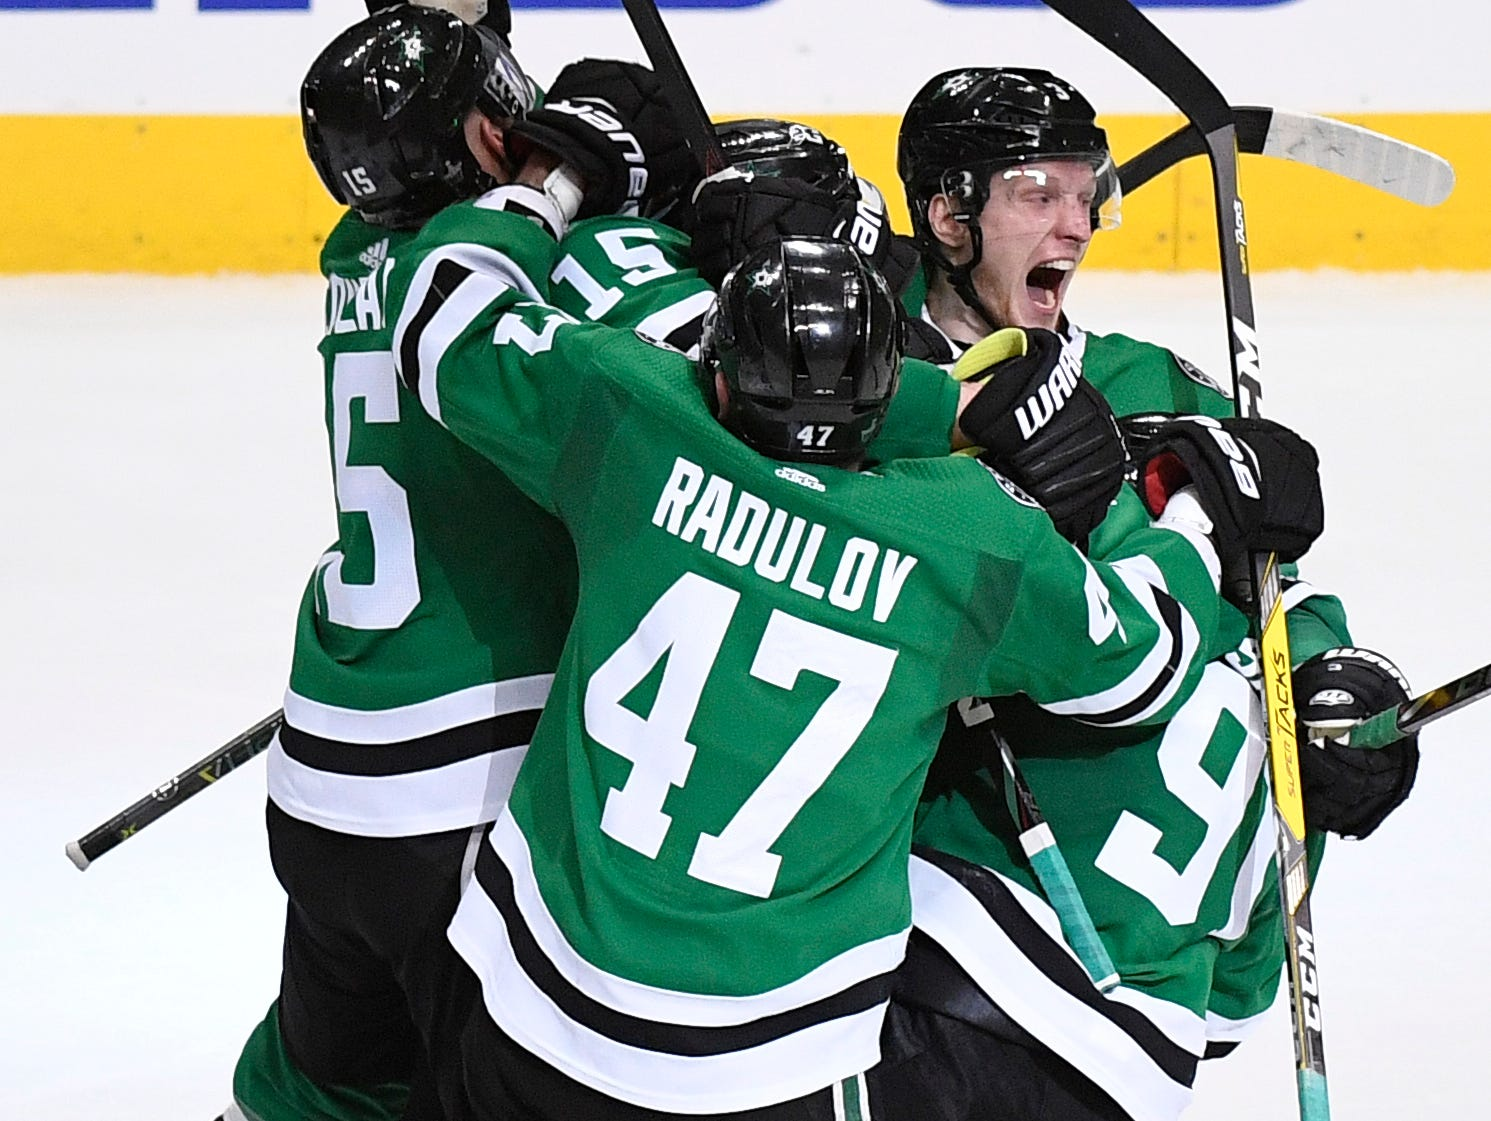 The Stars celebrate the game-winning overtime goal by Dallas Stars defenseman John Klingberg (3) ending the divisional semifinal series at the American Airlines Center in Dallas, Texas, Monday, April 22, 2019.